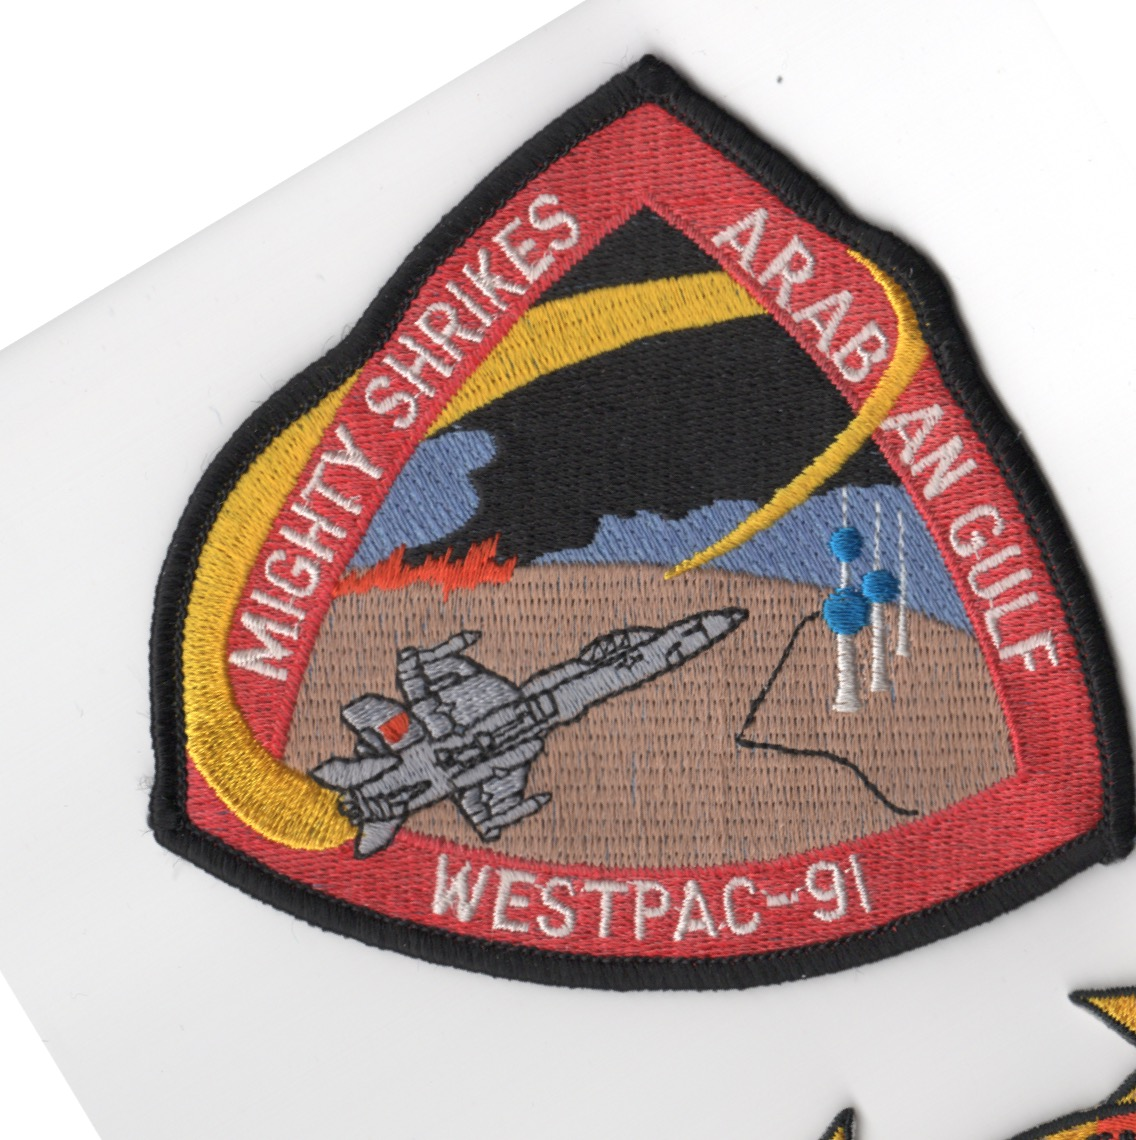 396) VFA-94 1991 WestPac Cruise Patch